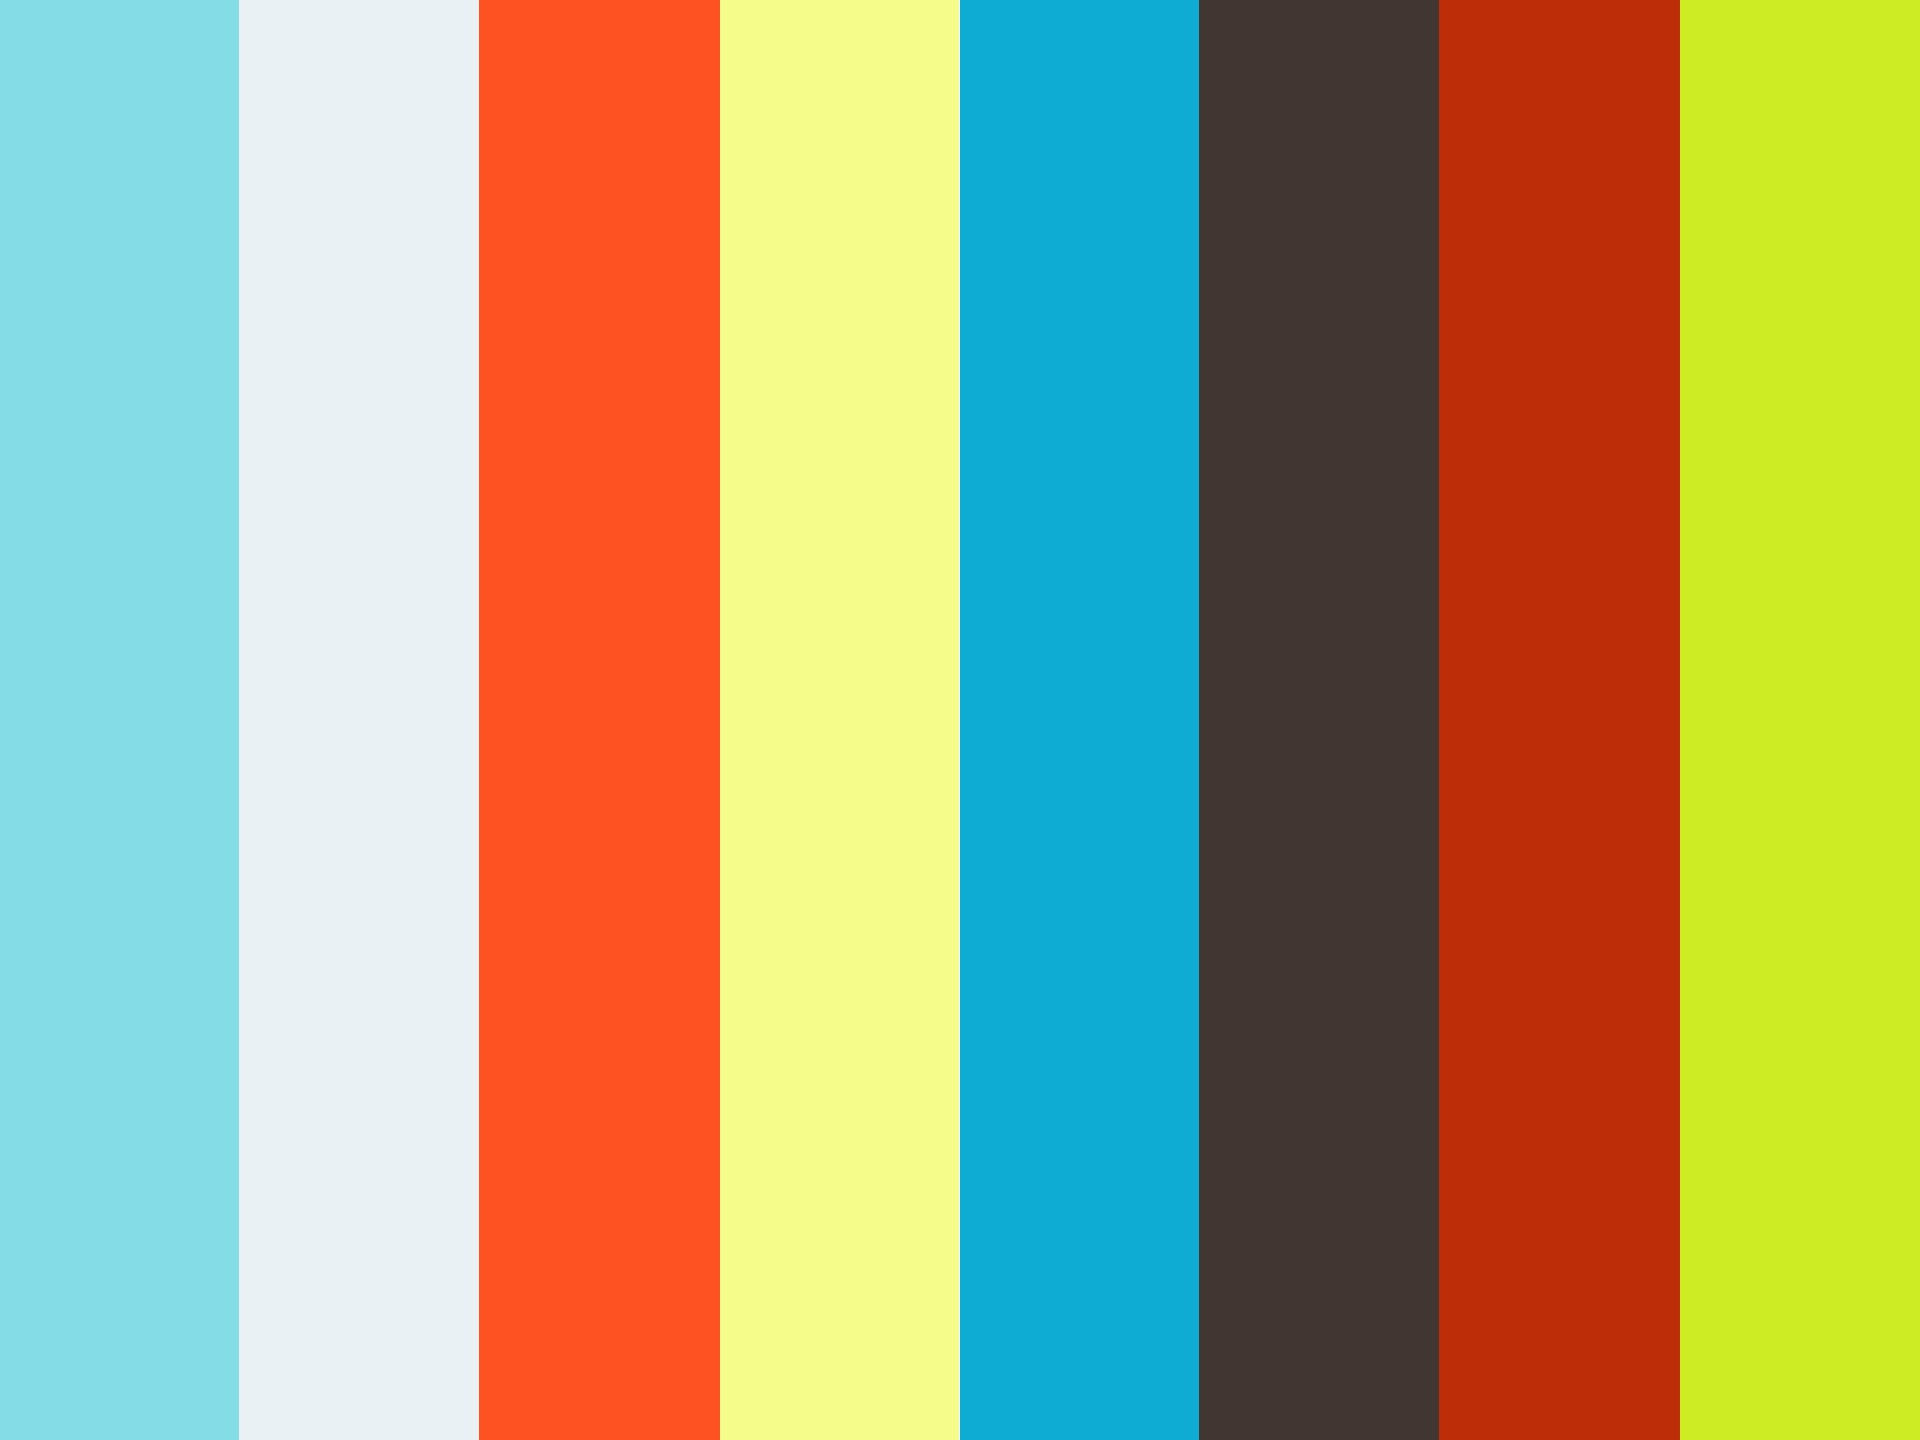 ACOSOG Phase III Trial: Laparoscopic Assisted vs. Open Resection 2011